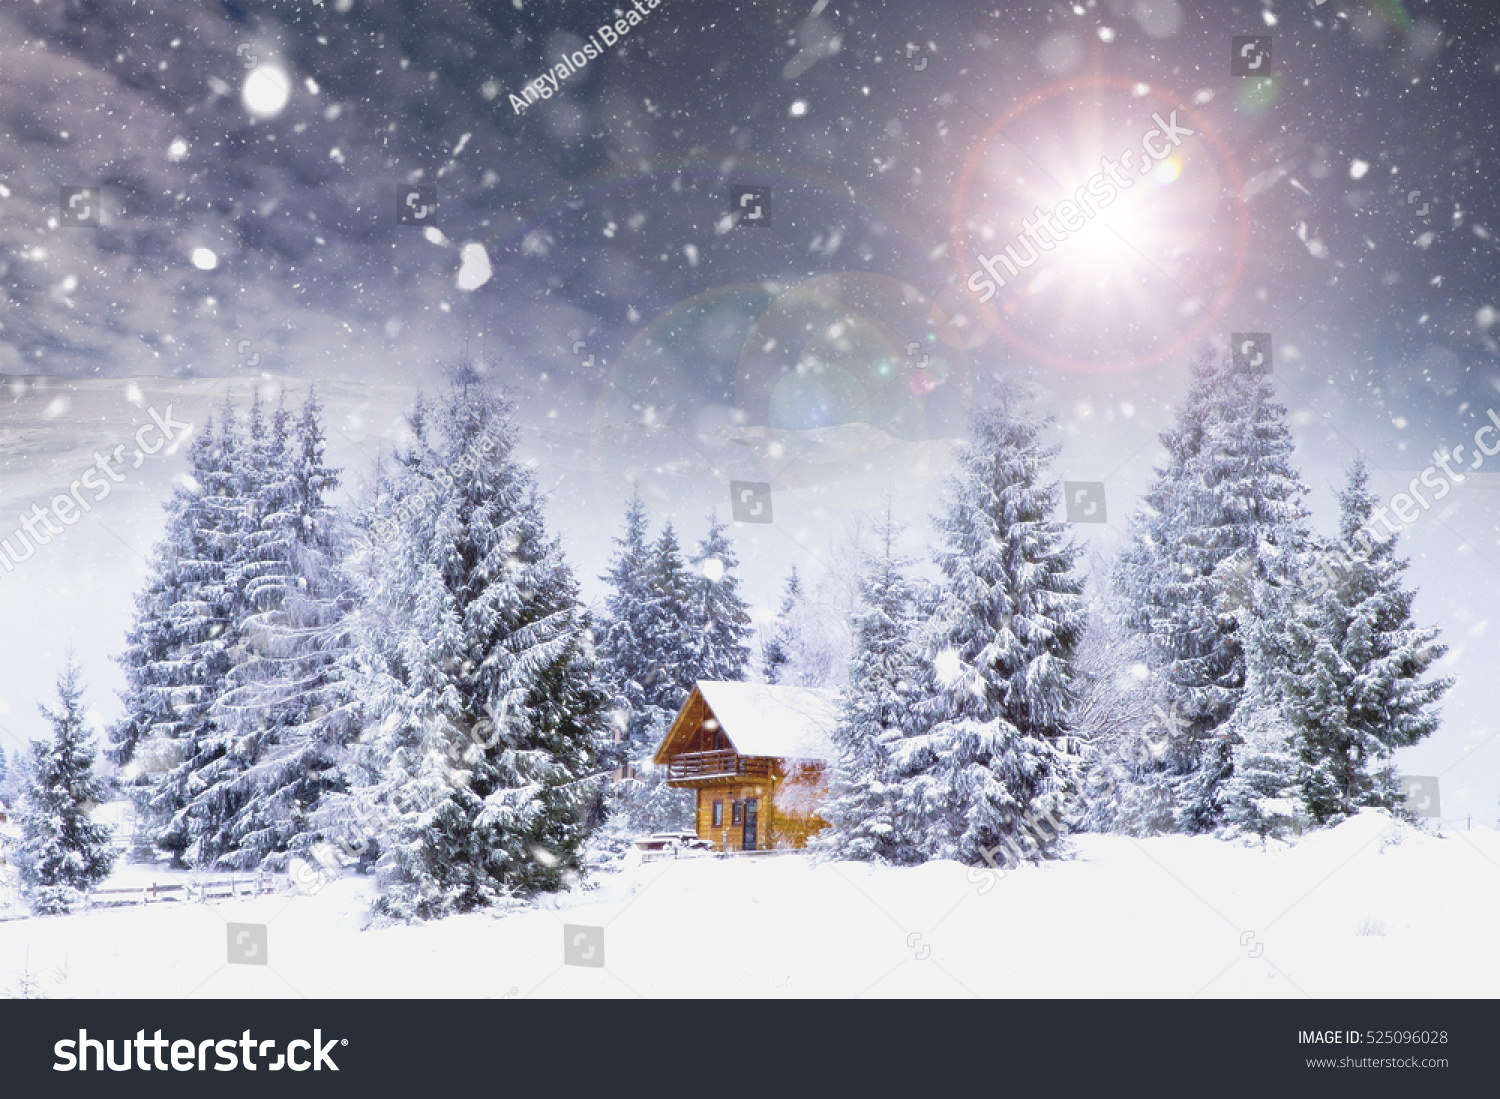 Fairytale Cottage Woods Winter Christmas Concept Stock Photo 525096028